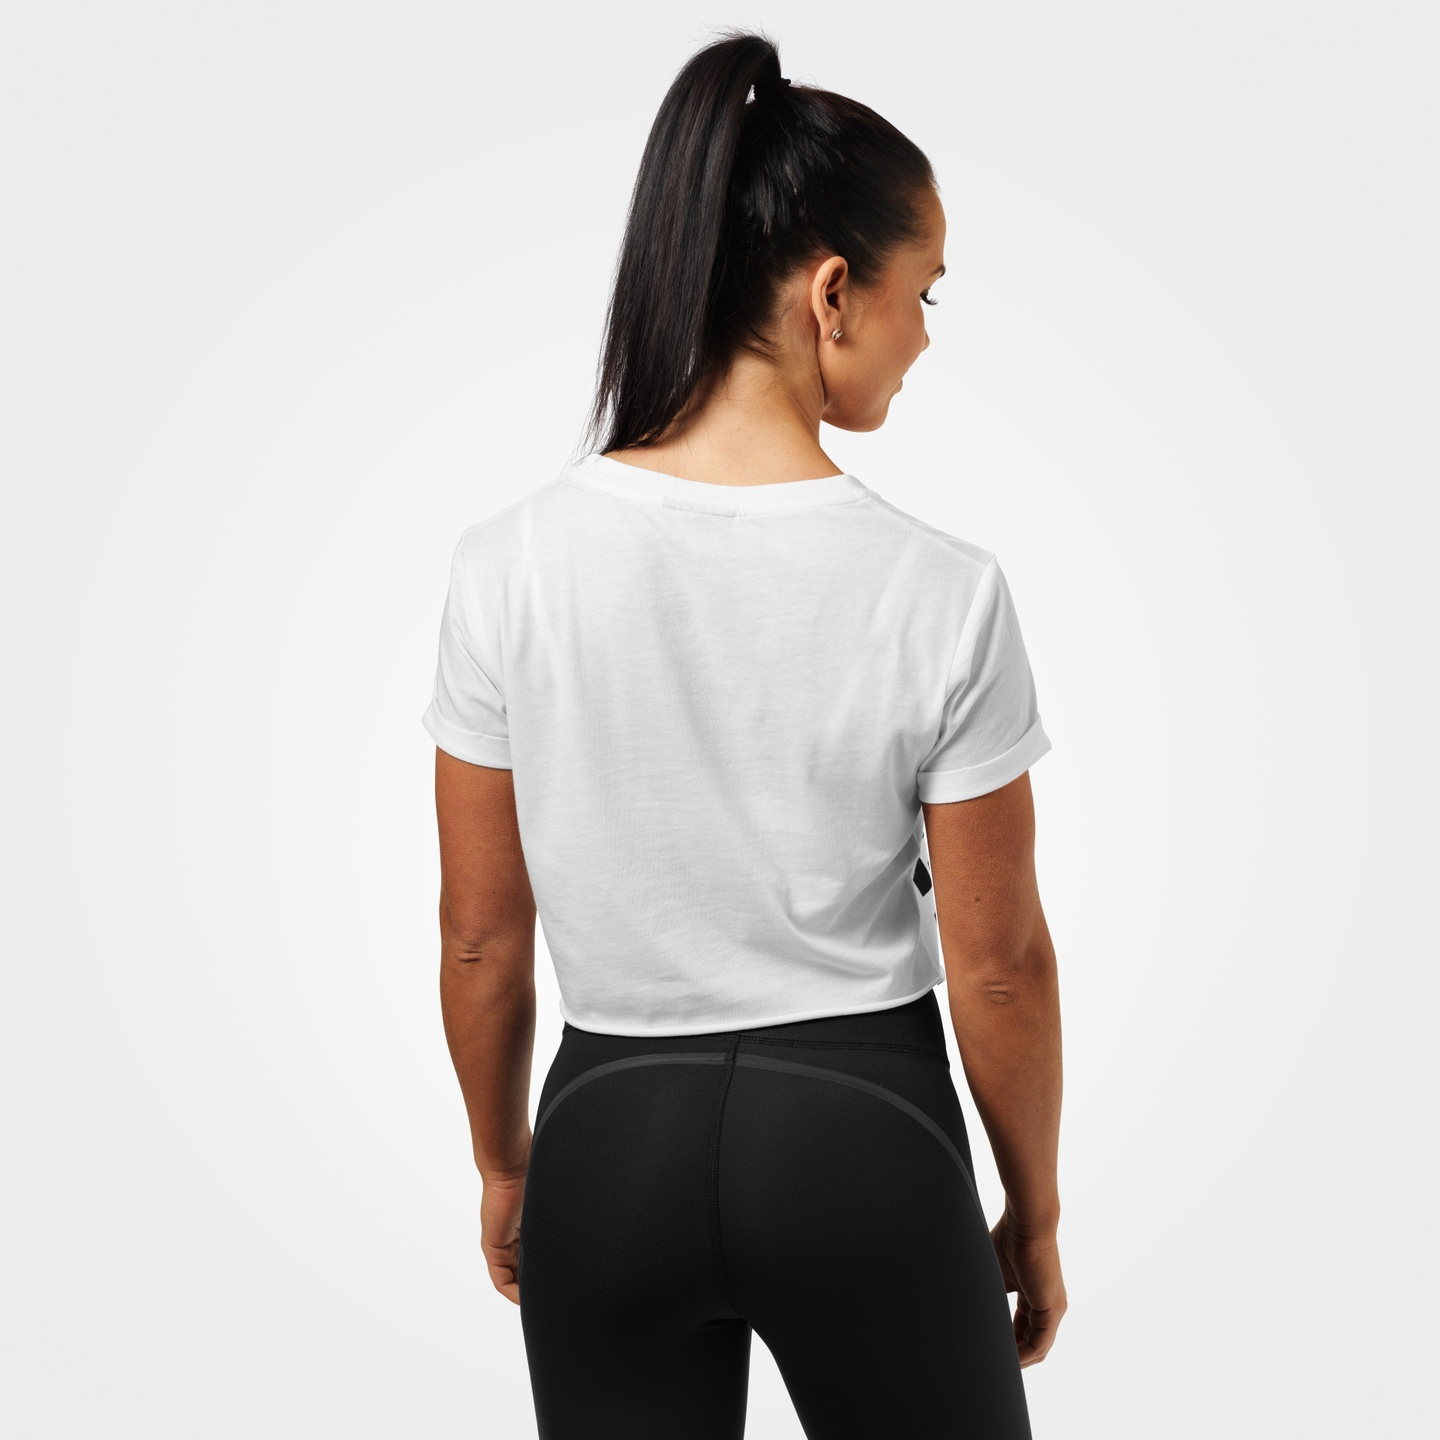 68a4b5b956d7 ... White A product image of Astoria cropped tee